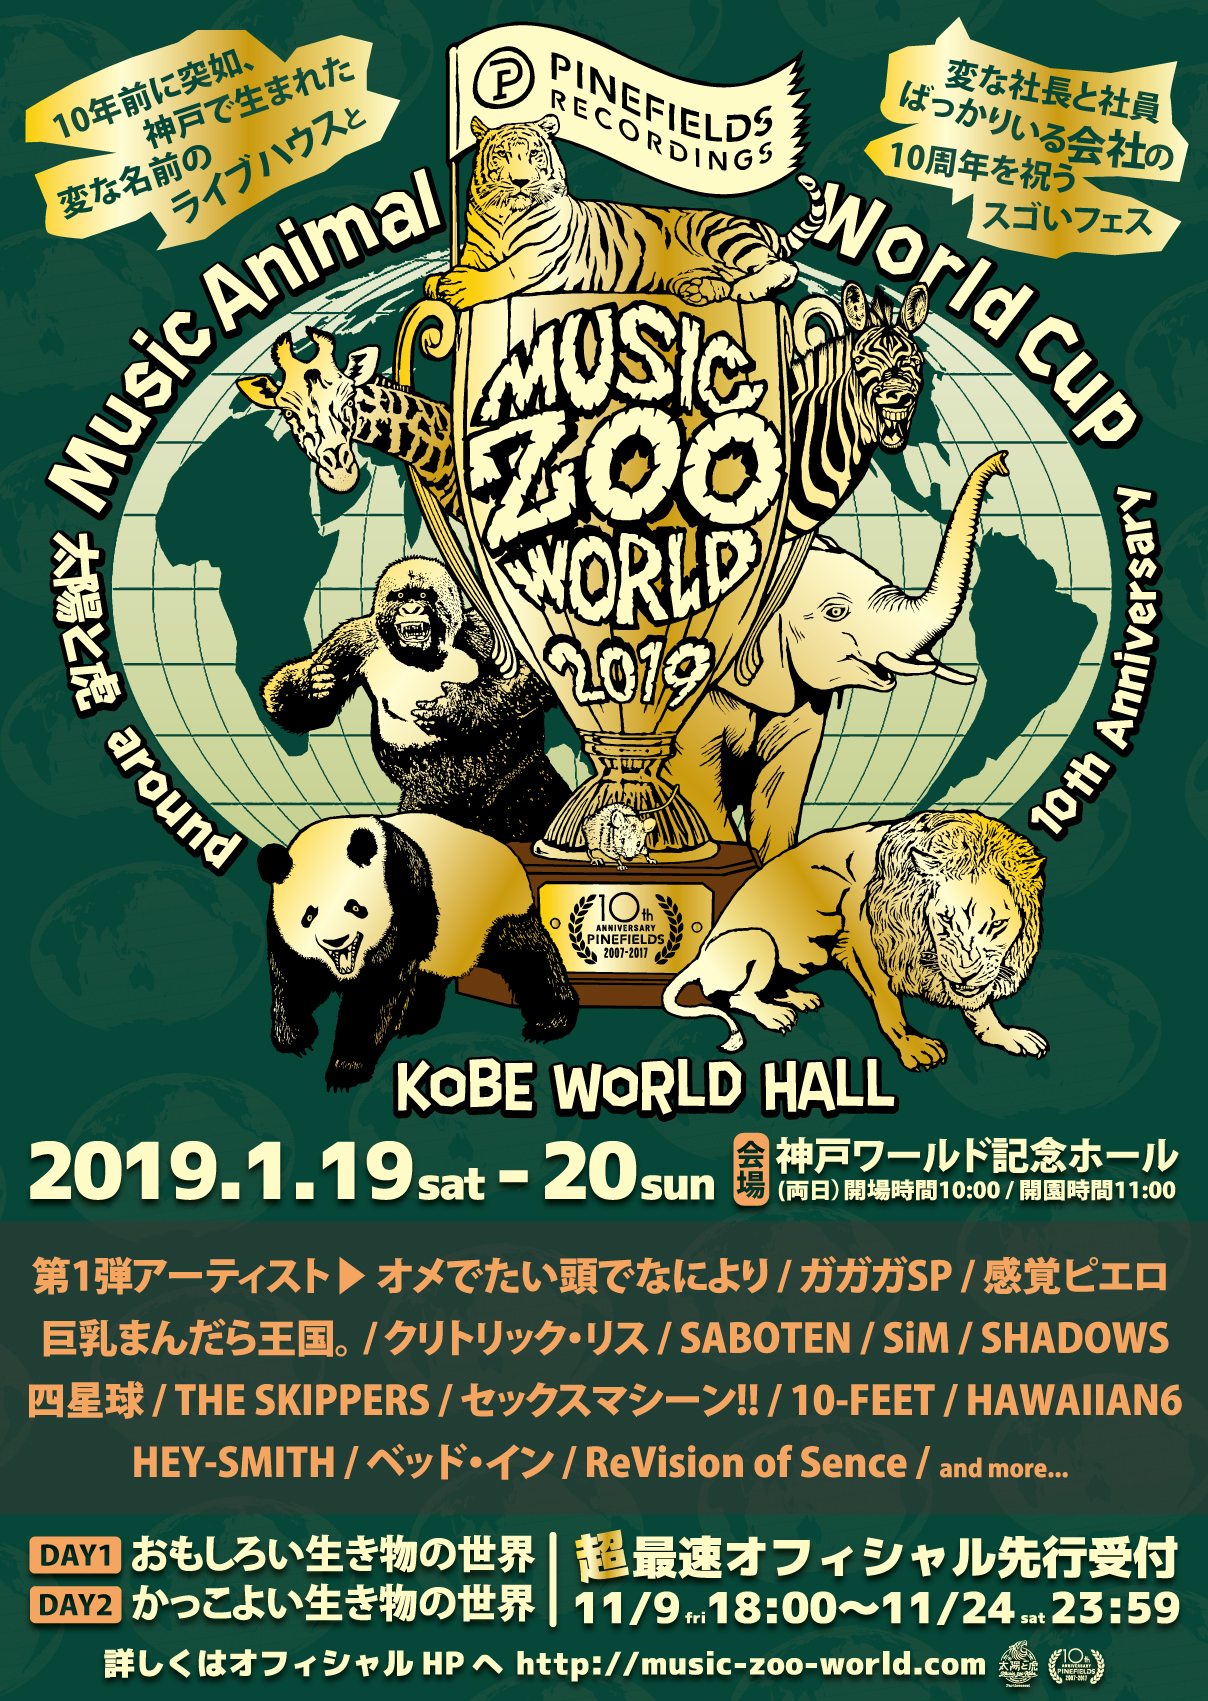 PINEFIELDS & music zoo KOBE太陽と虎 around 10th Anniversary MUSIC ZOO WORLD